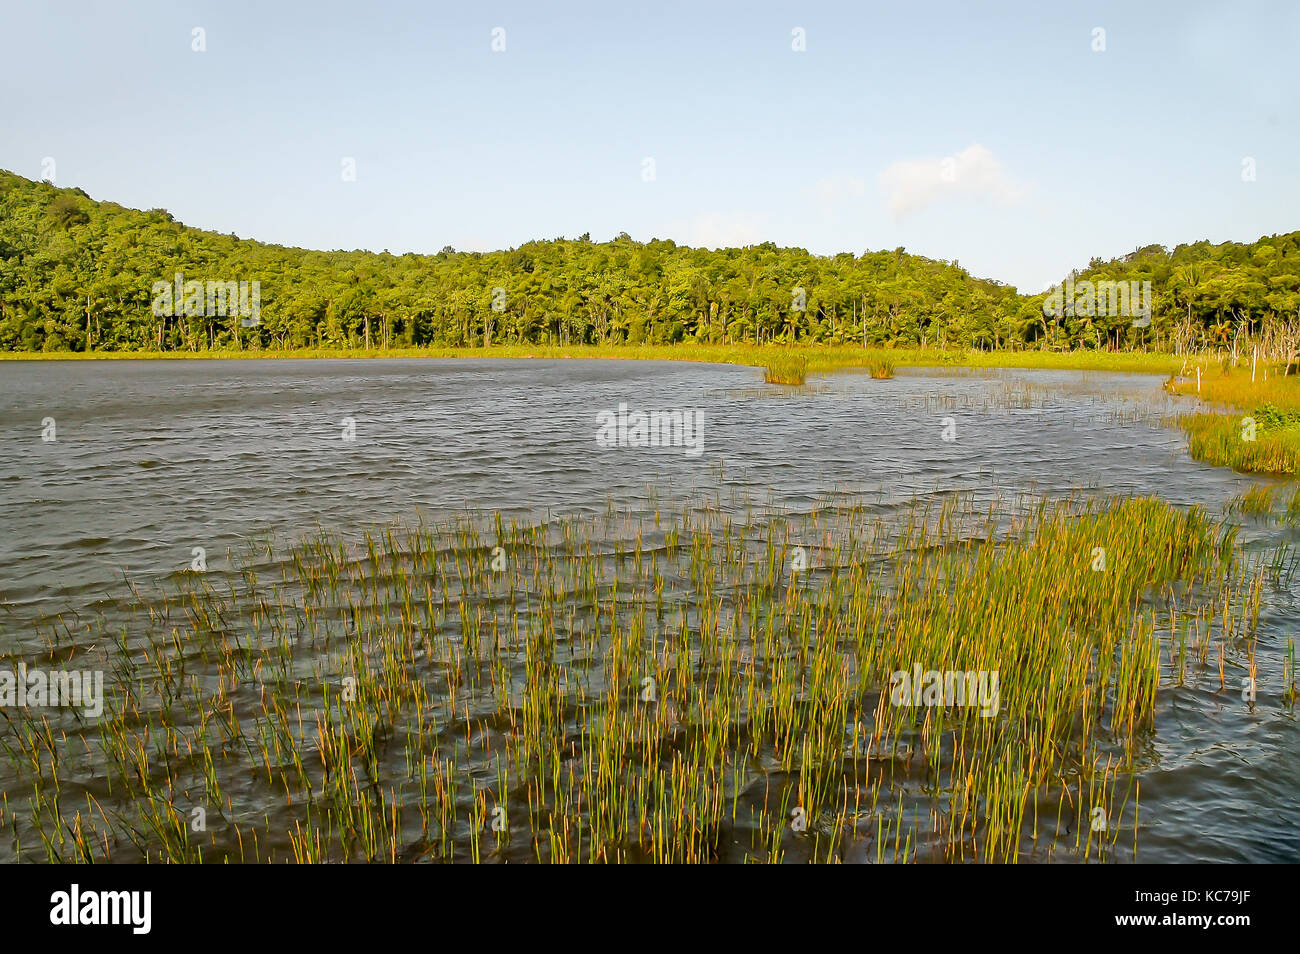 Grass reeds growing in Grand Etang Lake, Grand Etang National Park and Forest Reserve, Grenada - Stock Image